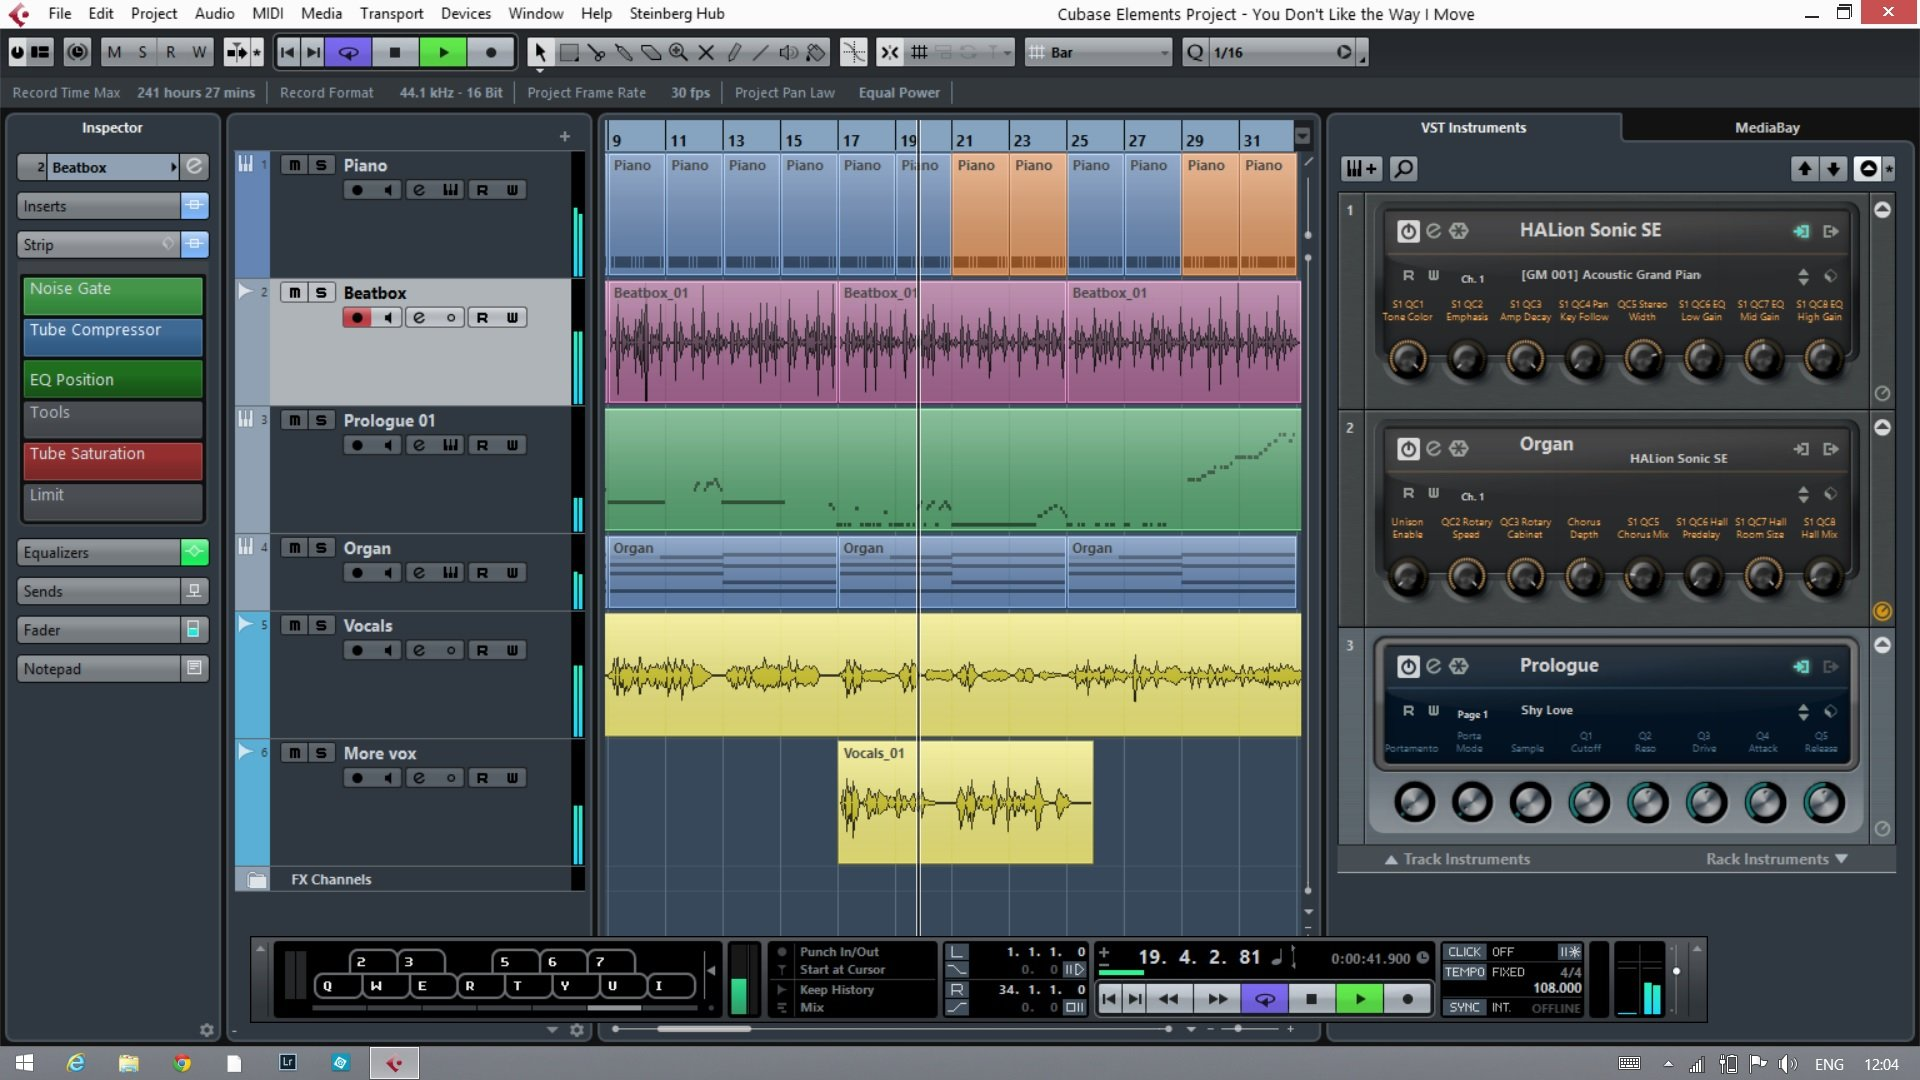 steinberg cubase elements 8 review